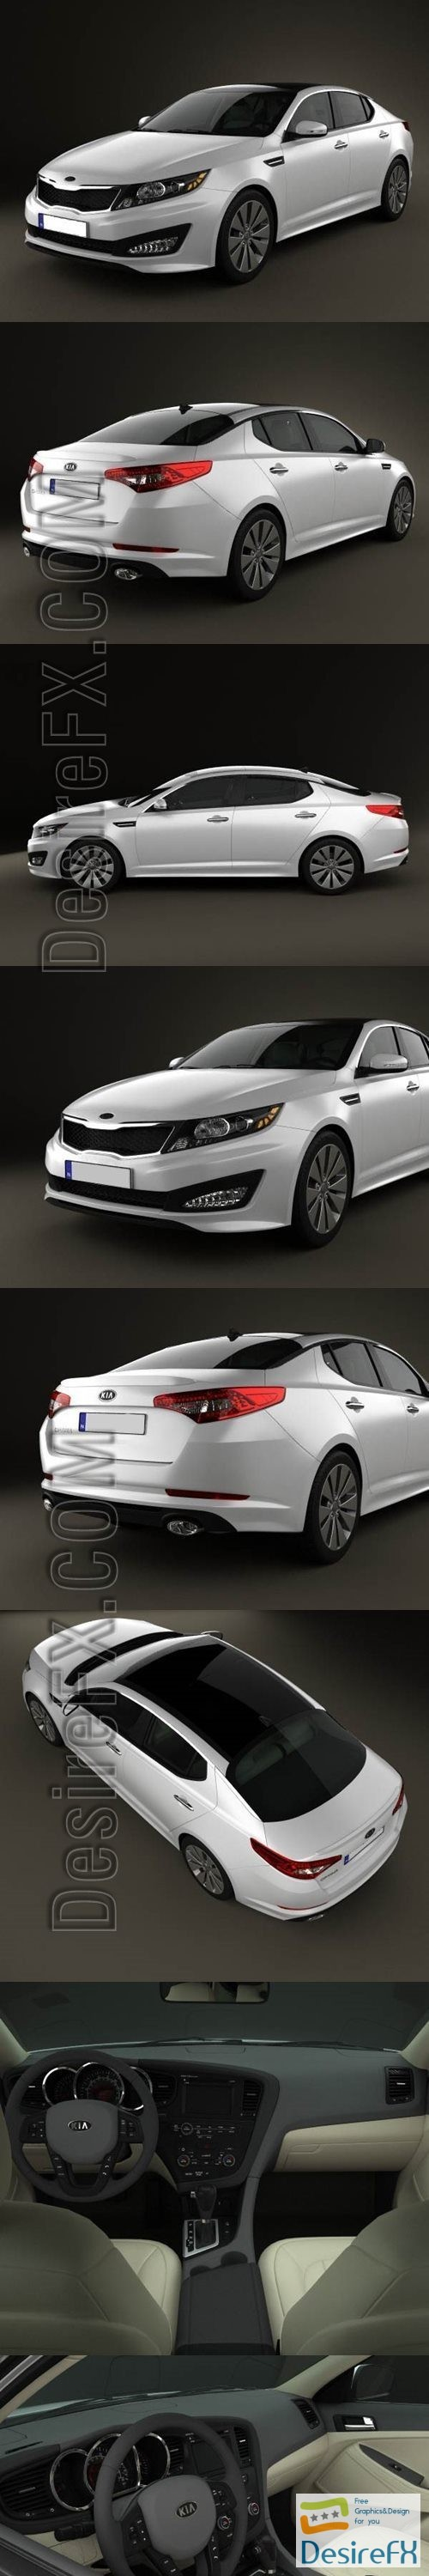 3d-models - Kia Optima with HQ Interior 2011 3D Model